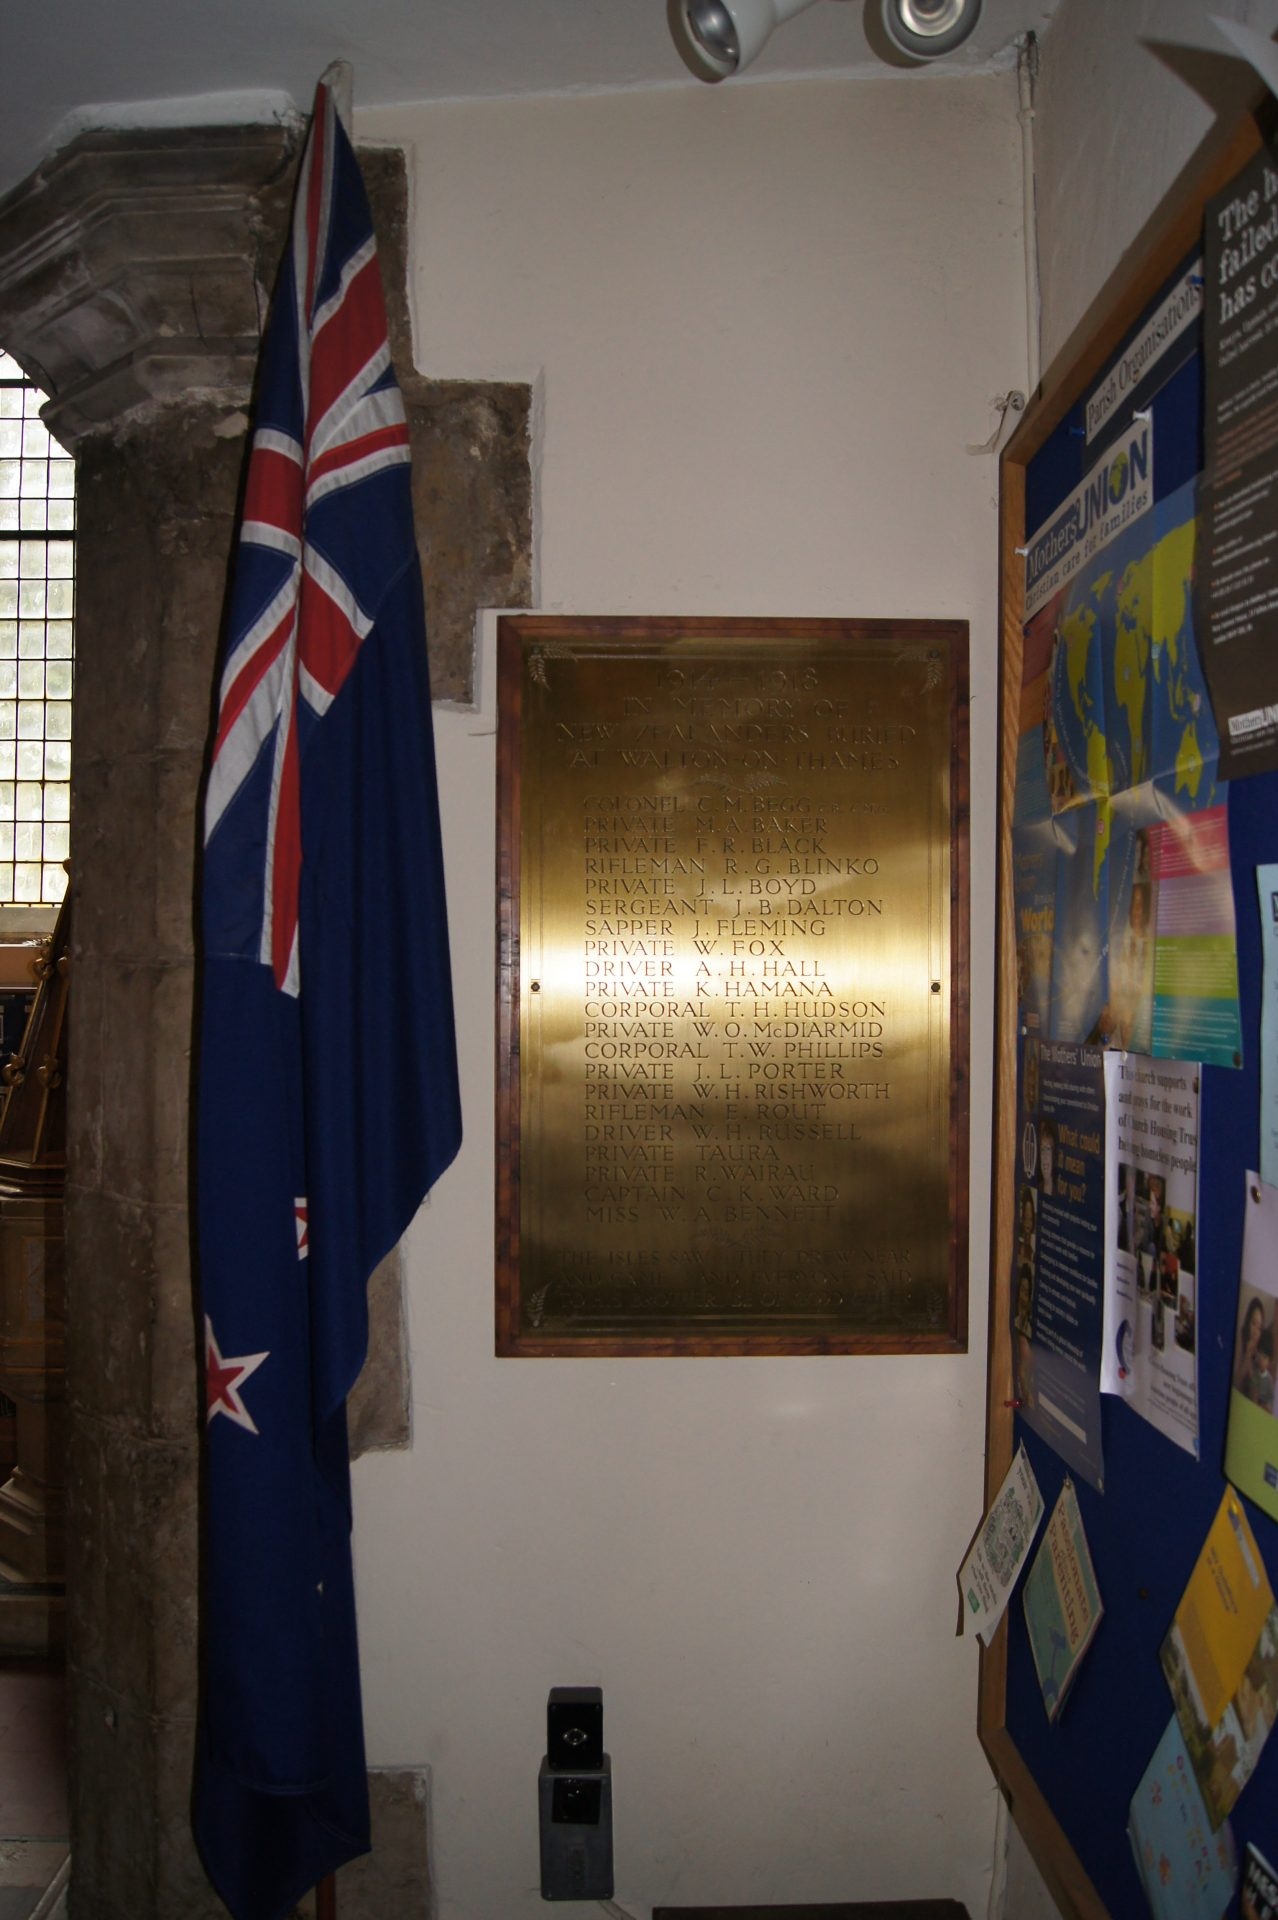 Memorial plaque in Walton-on-Thames Parish Church. Image: Courtesy of Darren Bayley, Walton-on-Thames.org, 2011.